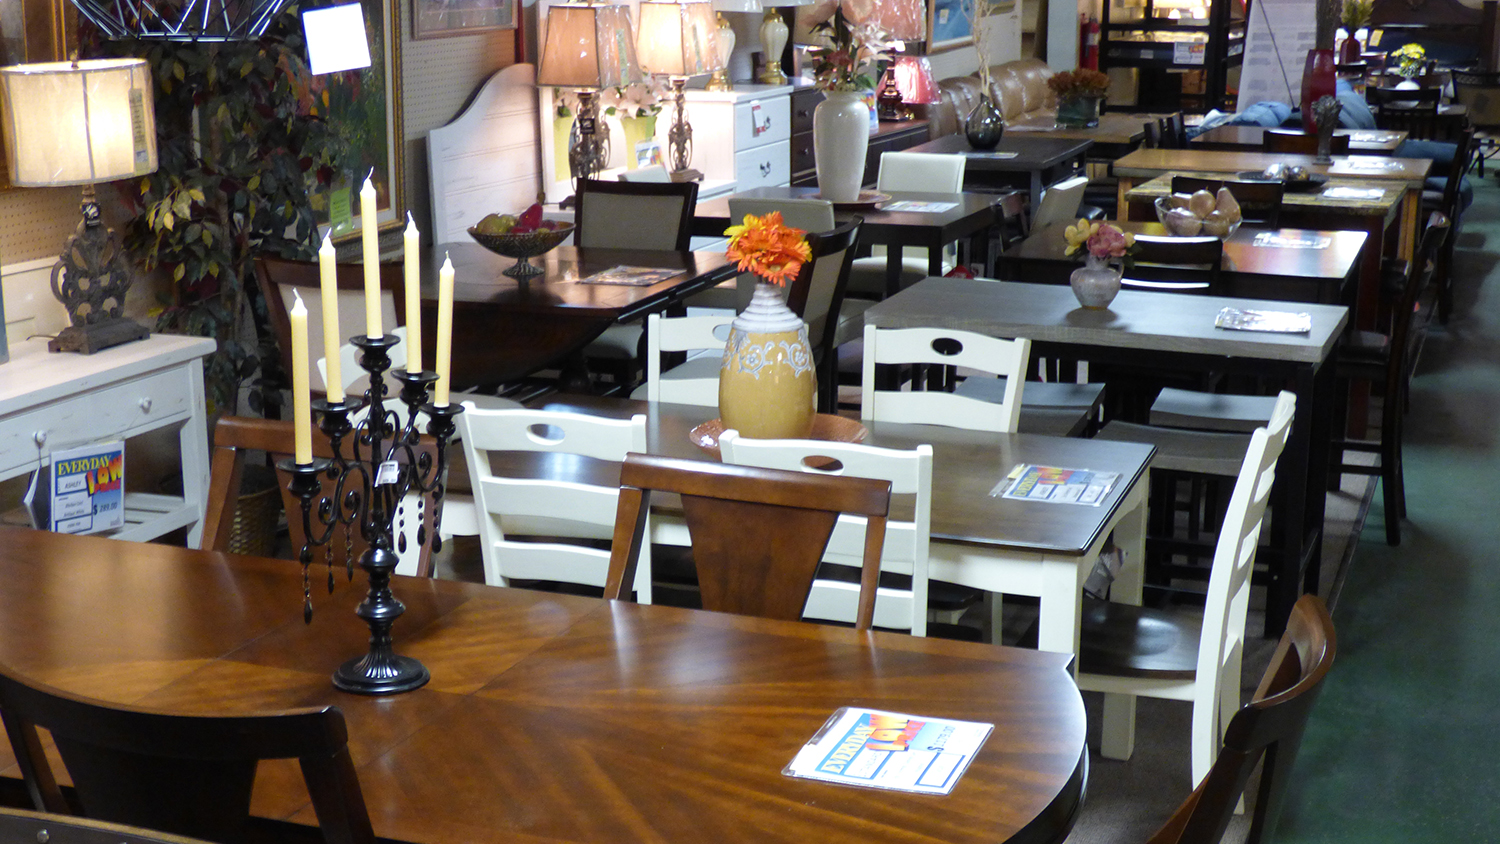 Faith Farm Furniture Donations Goodwill Furniture Chicago Home Design Ideas Goodwill Furniture